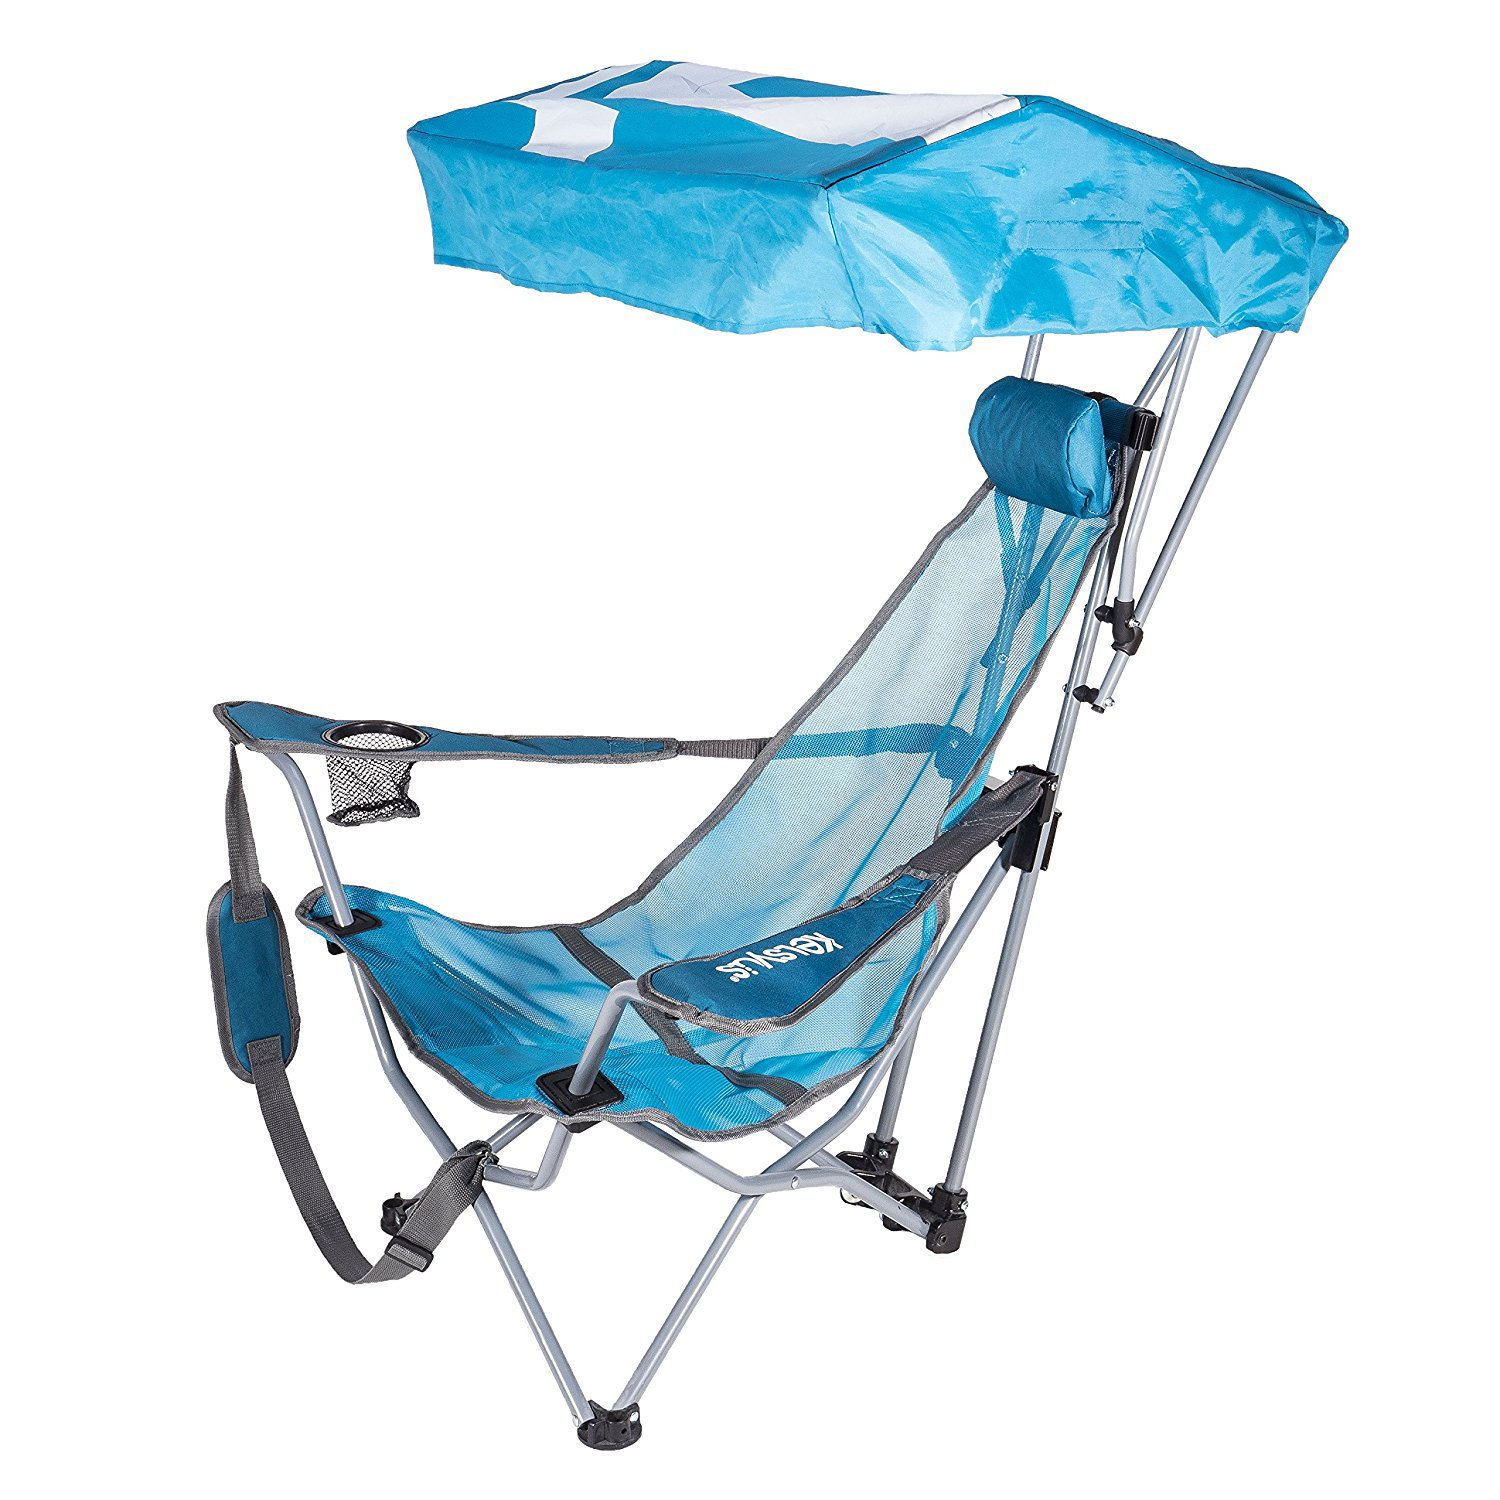 lawn chair with canopy covers harrogate kelsyus backpack beach portable camping folding teal walmart com